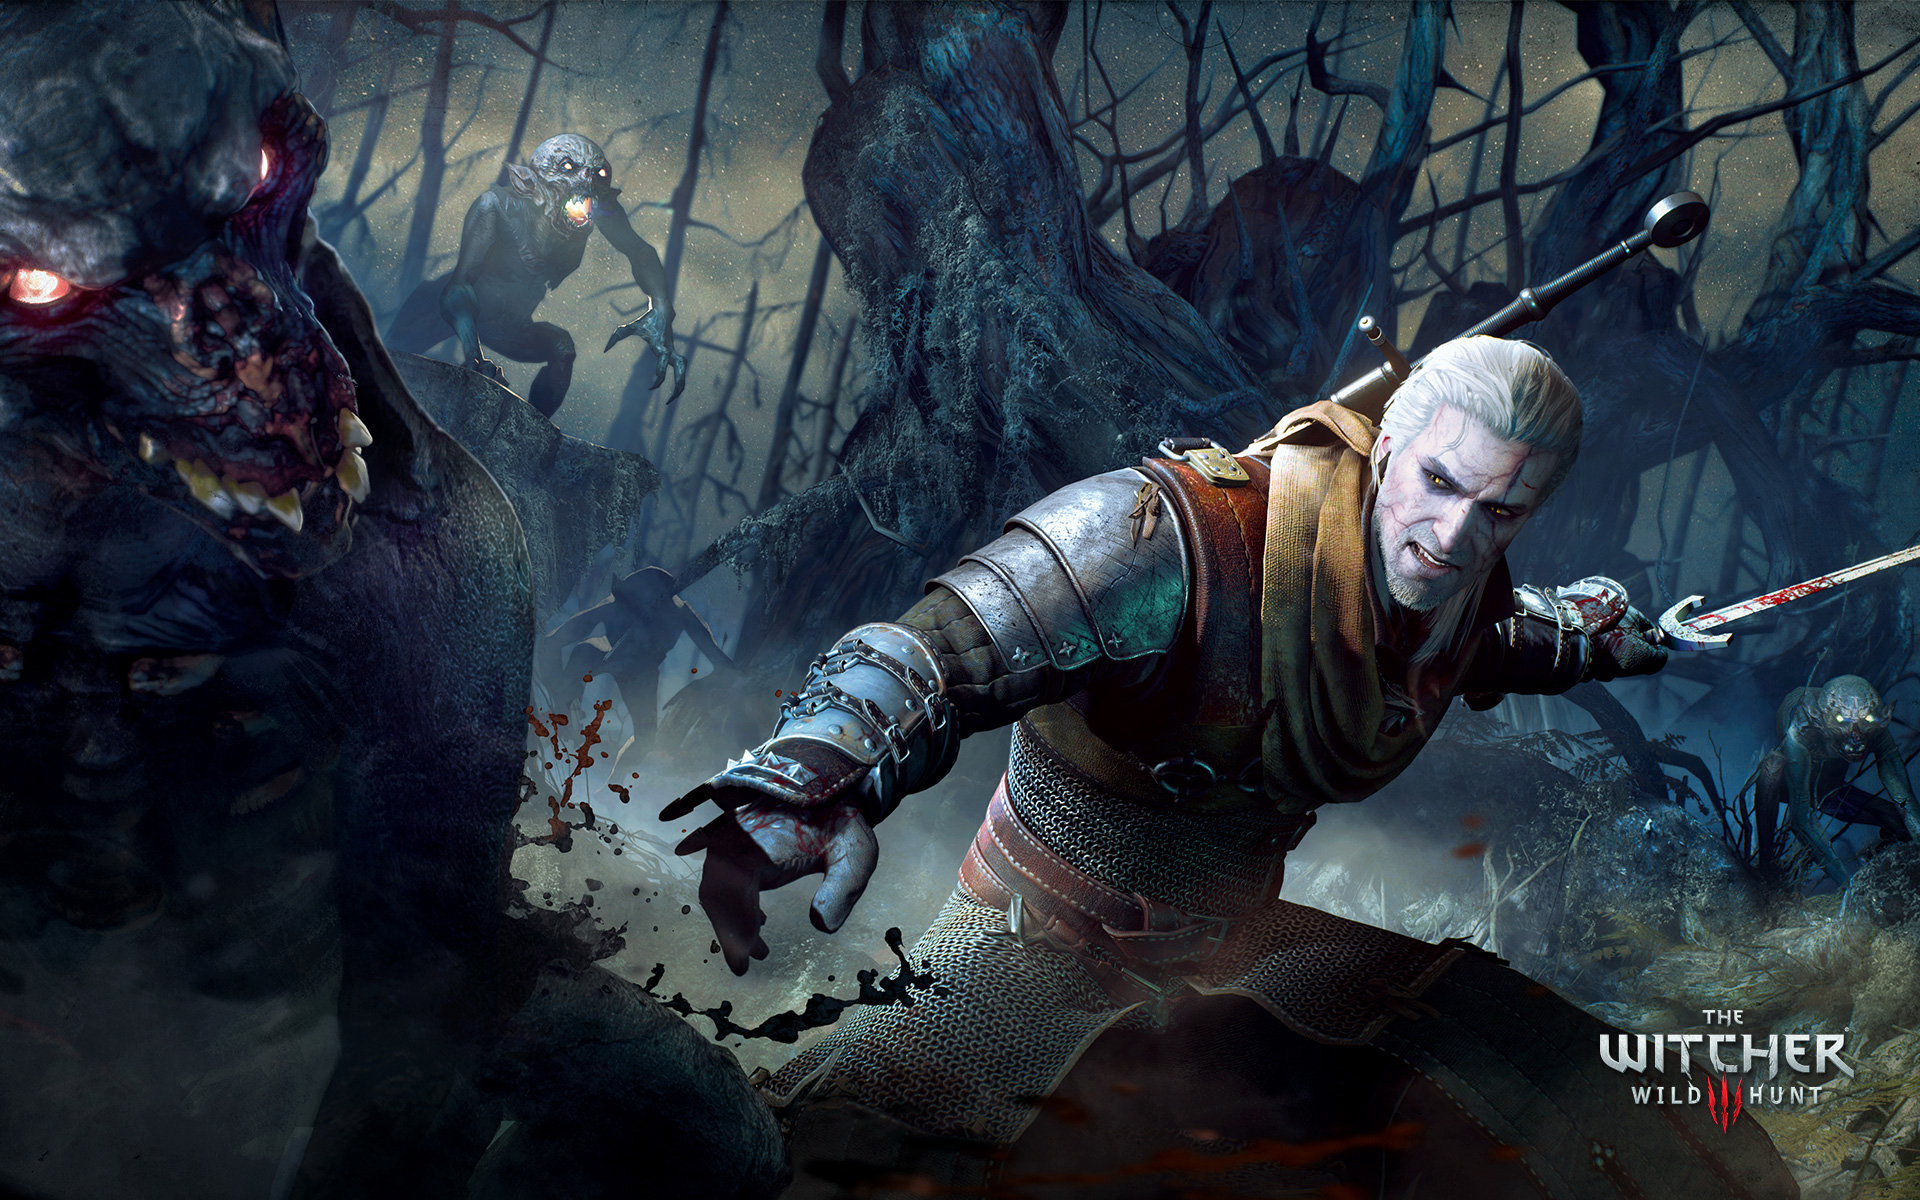 The Witcher 3 Wild Hunt 2015 Promotional Art Mobygames